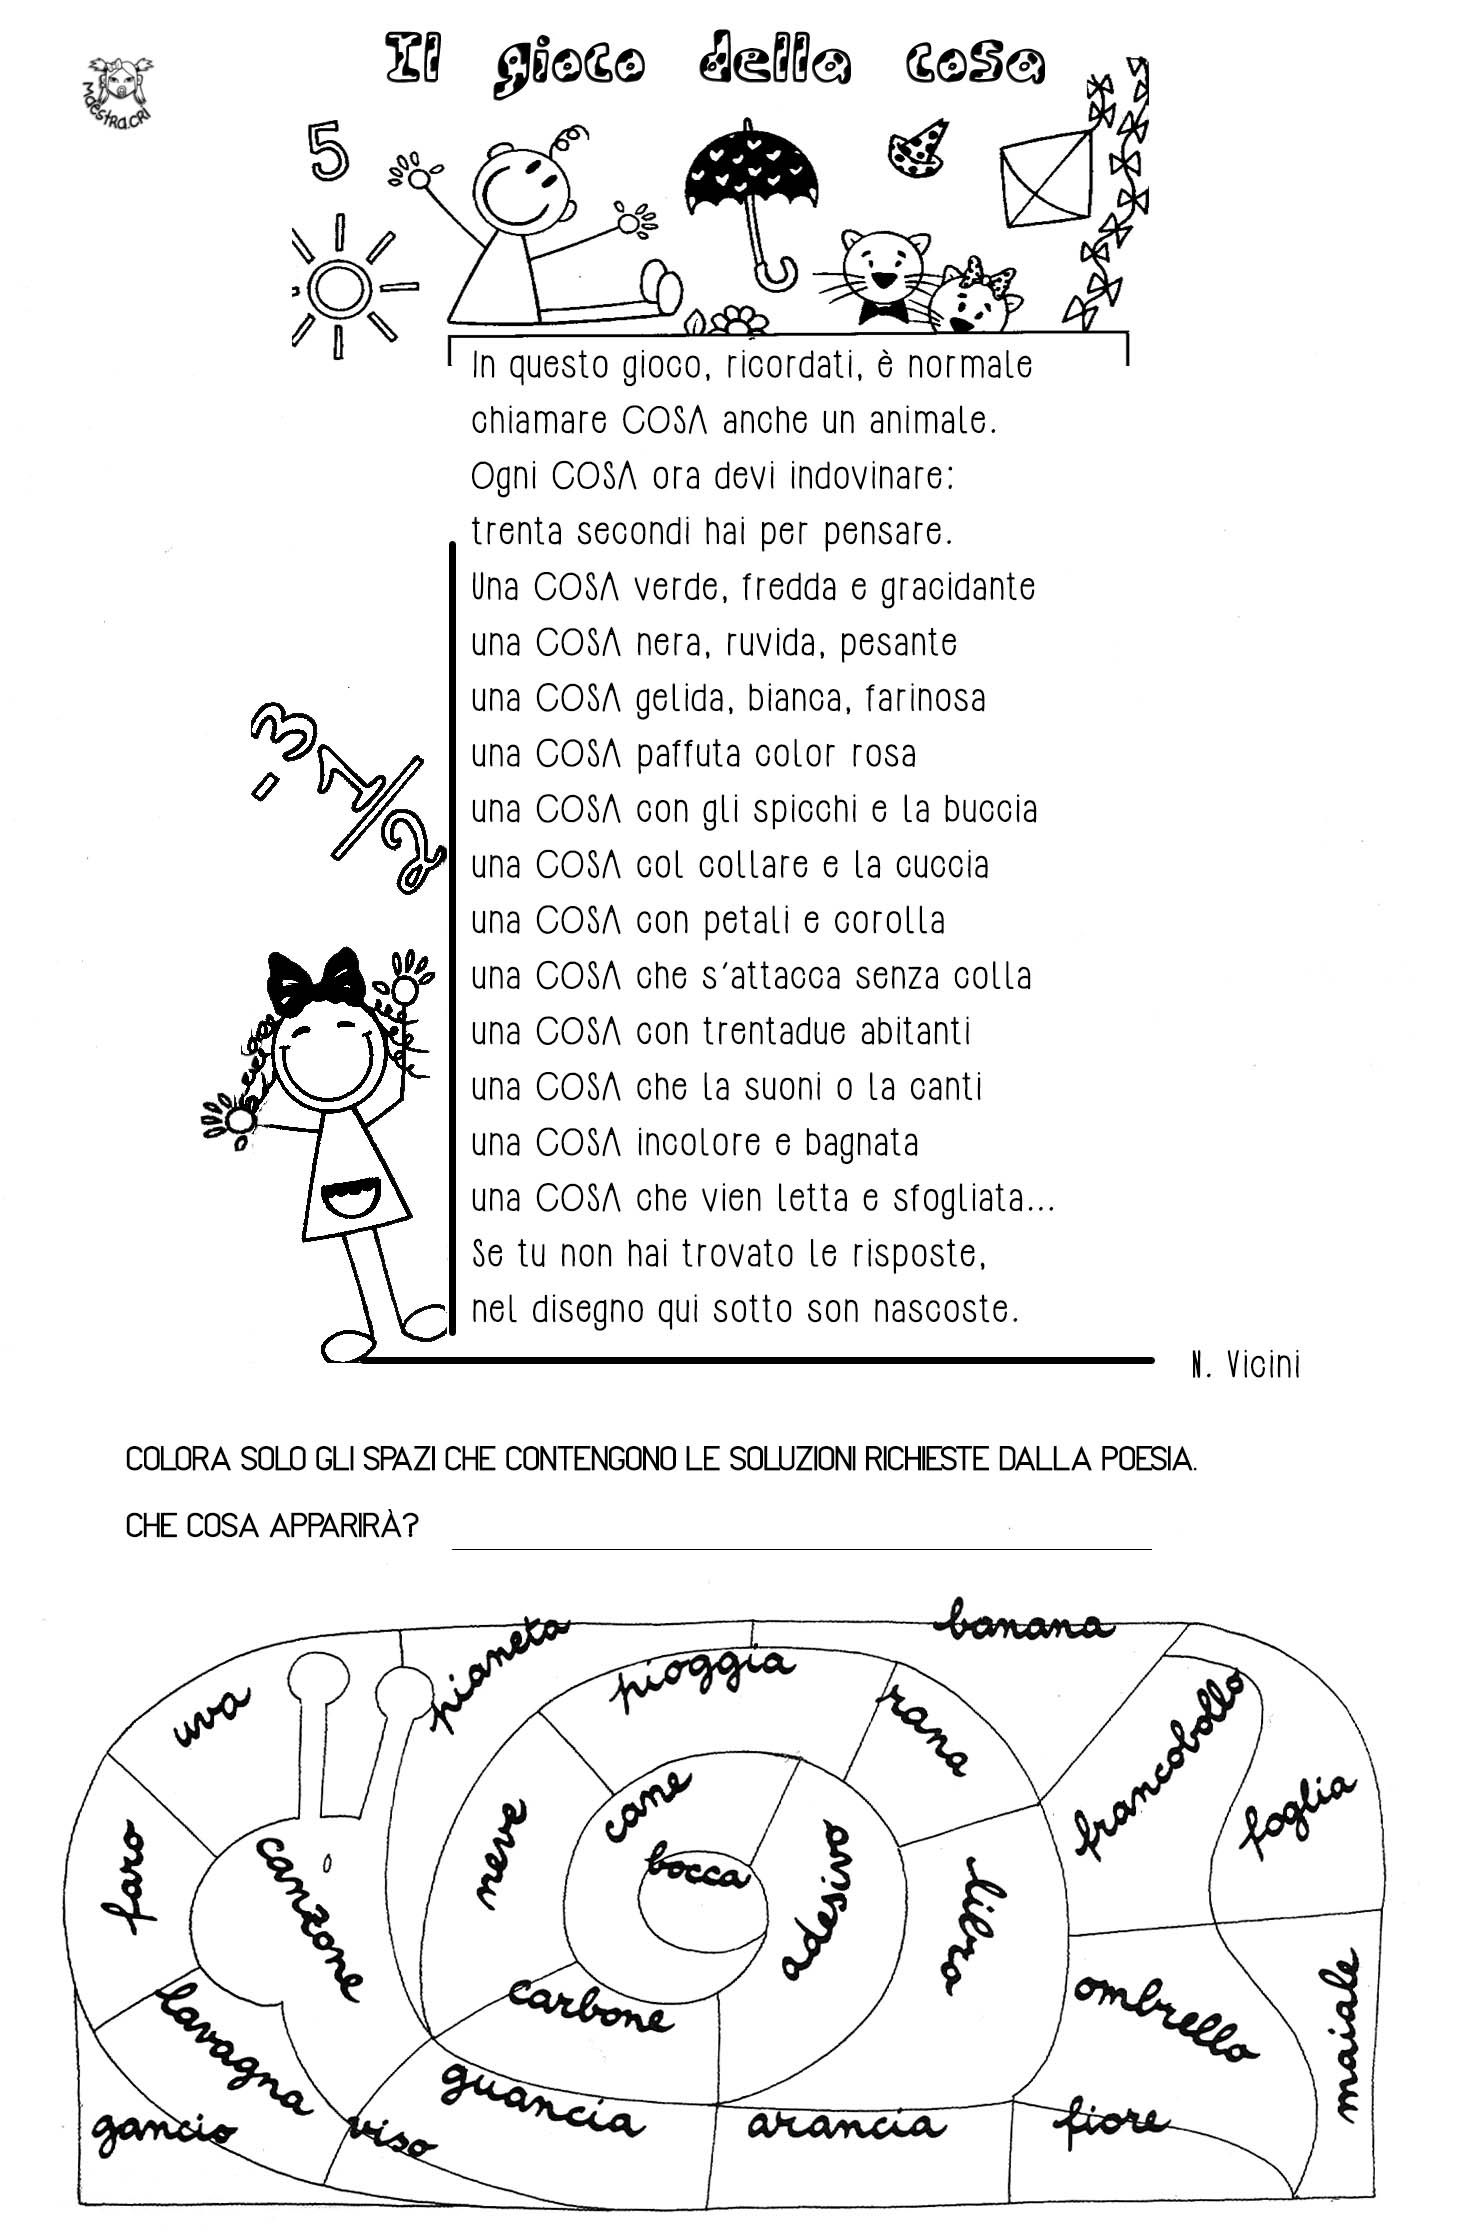 Worksheets Italian Language Worksheets pin by maestra cri on italiano pinterest school language and primary montessori math classroom italian vocabulary worksheets homeschooling literacy learning